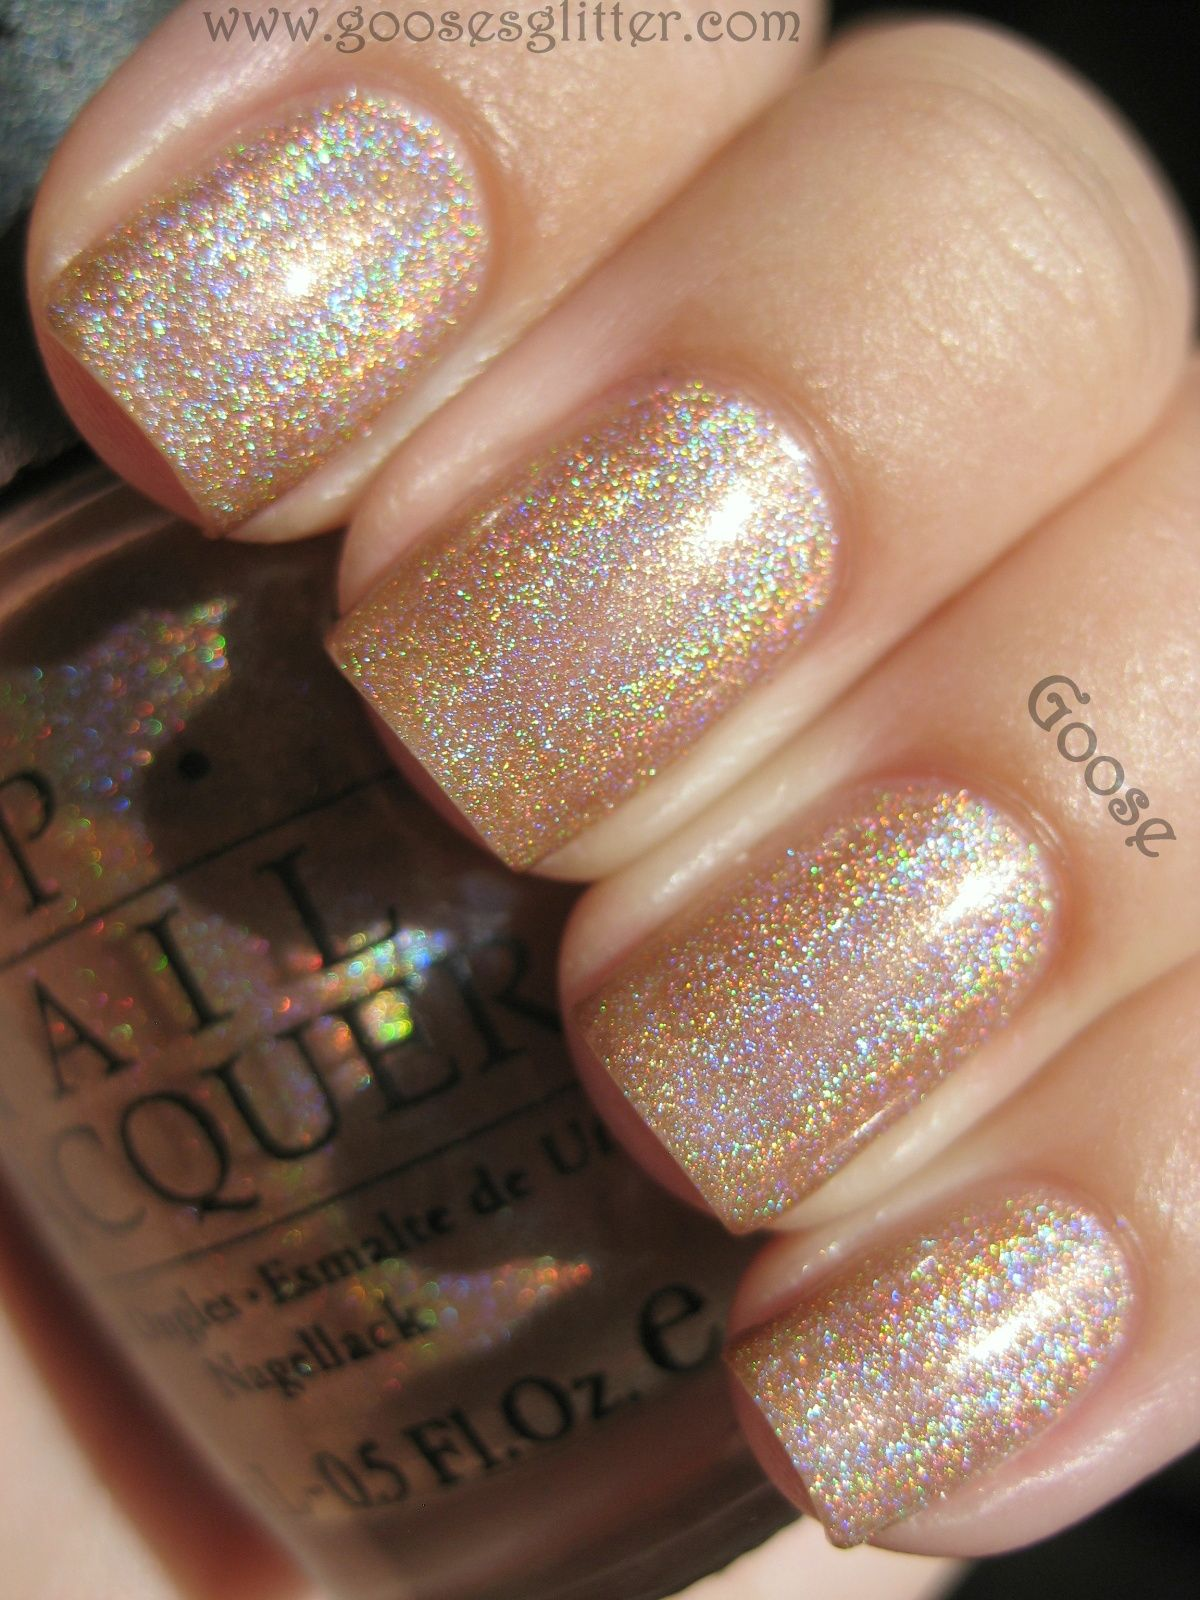 Goose's Glitter-an awesome website for different nail ...